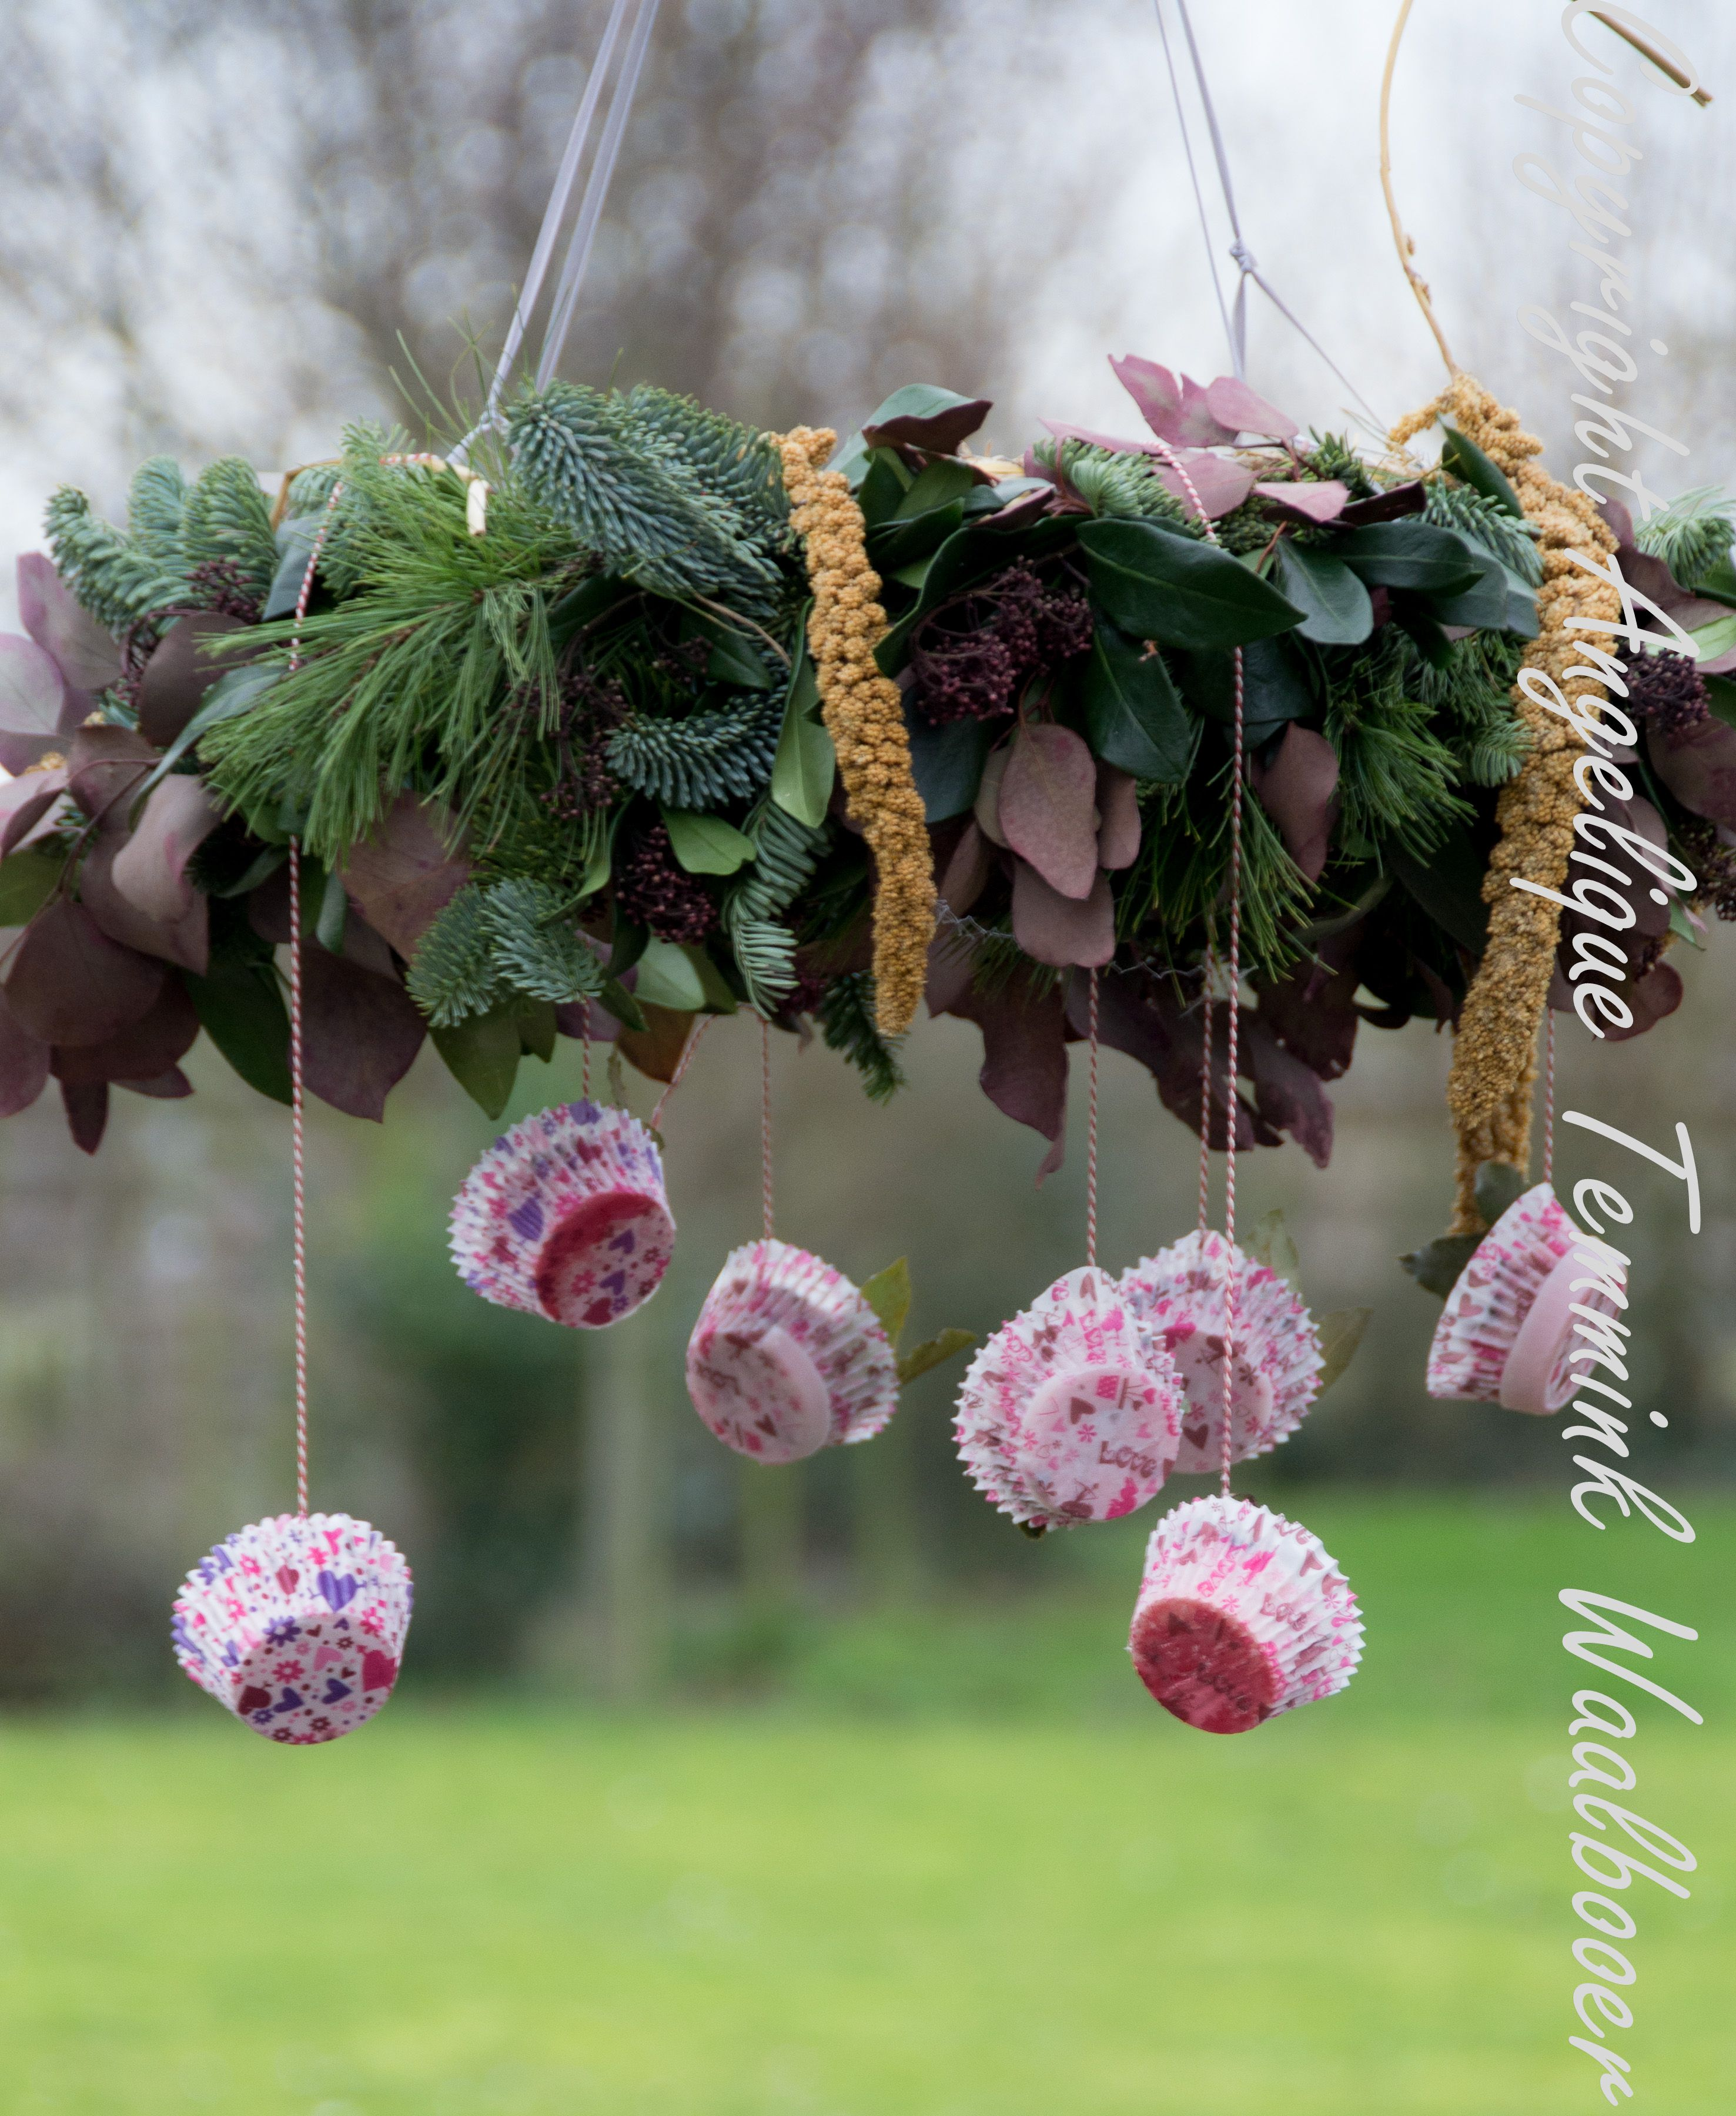 Birdfeeder made from my old Christmas wreath